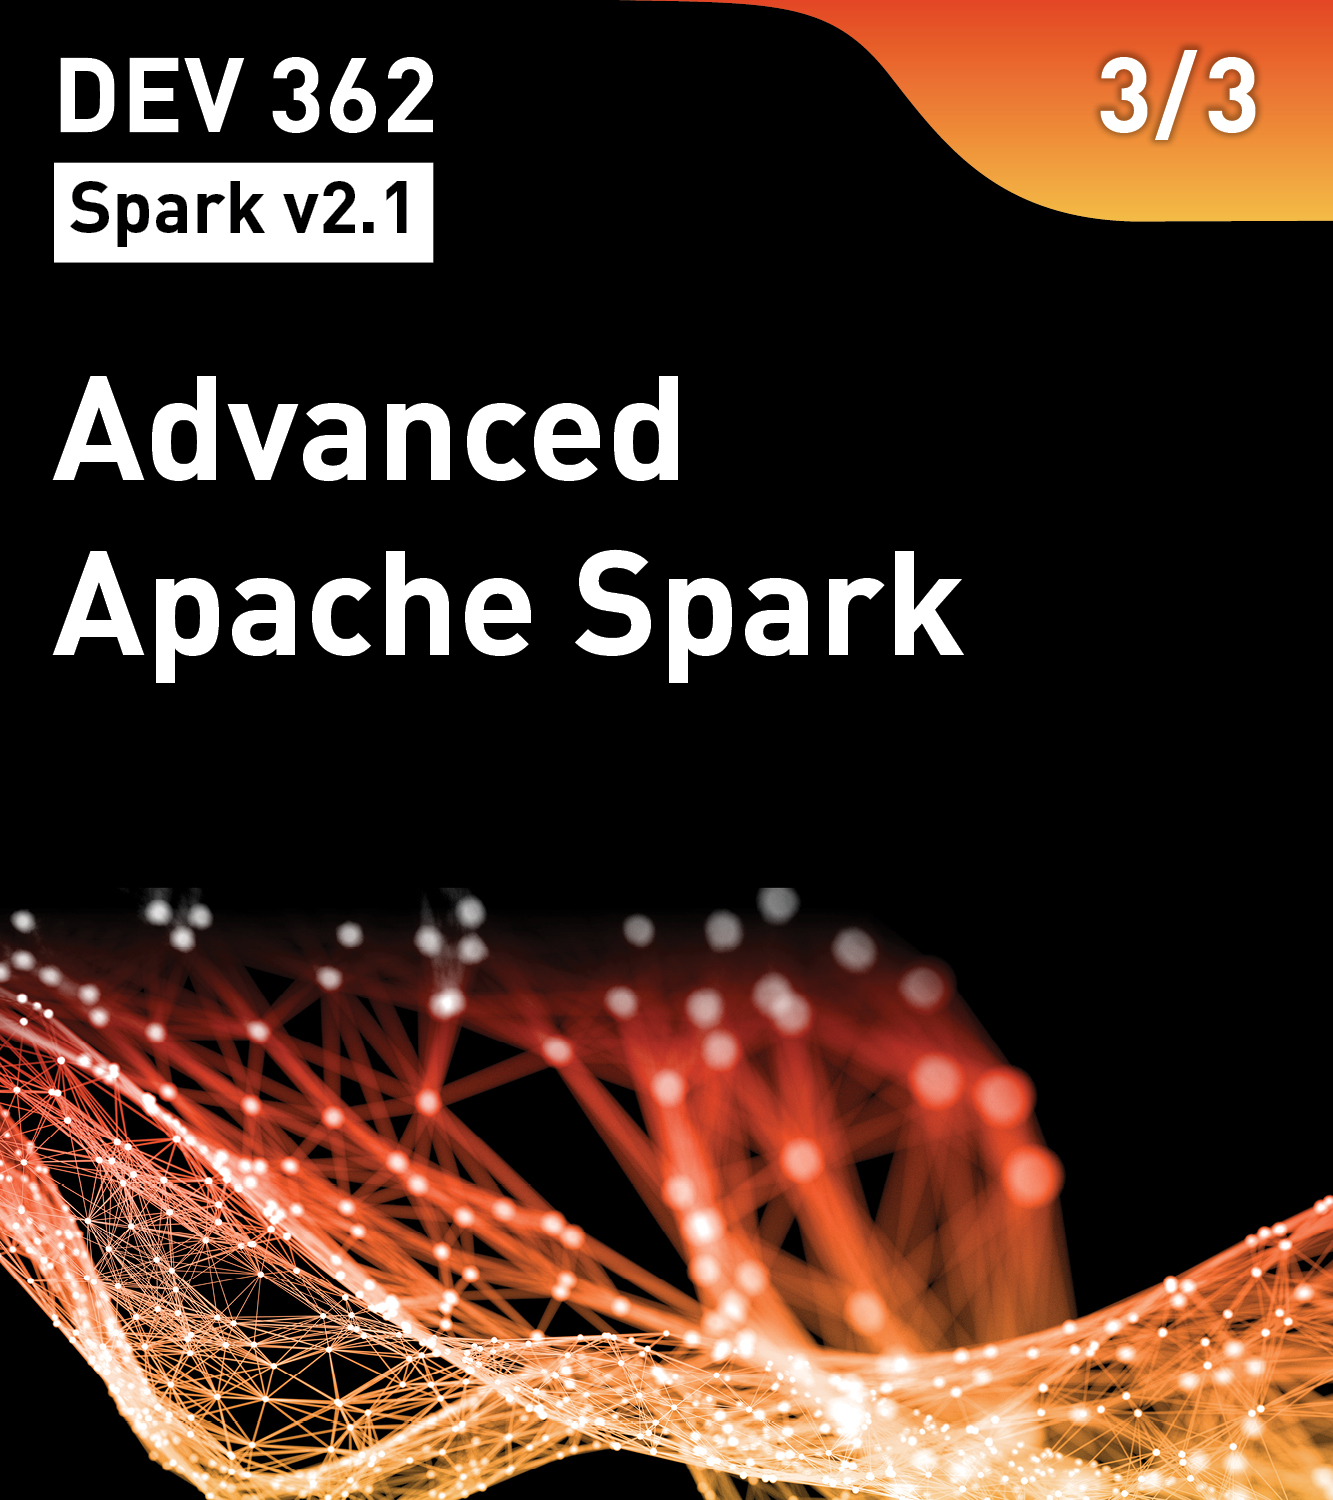 Advanced Apache Spark (Spark v2.1)